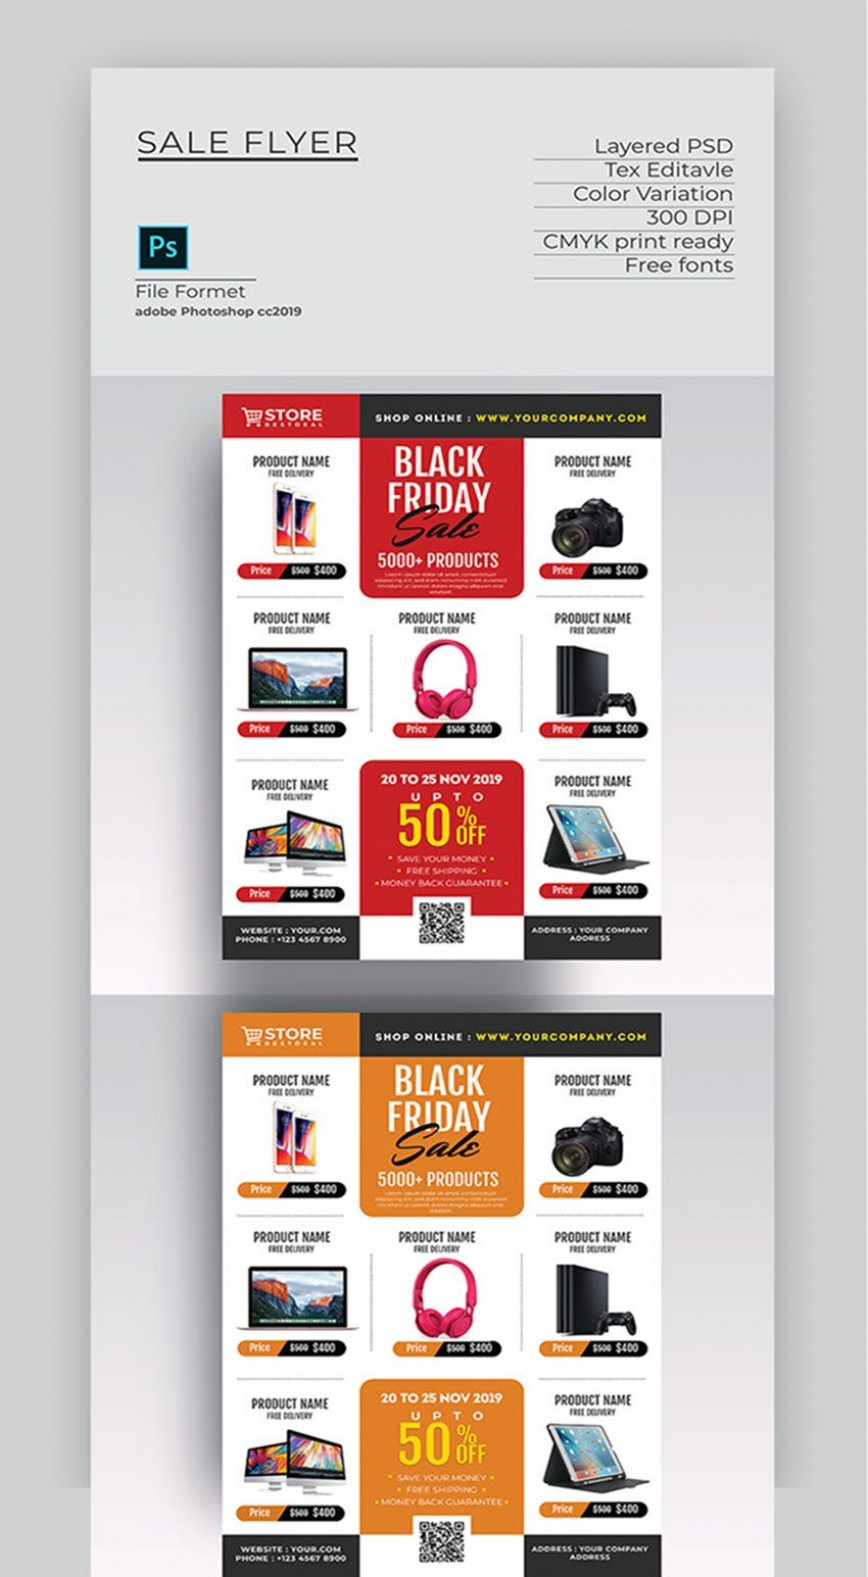 007 Exceptional For Sale Flyer Template Design  Home Free With Tab Busines Ad